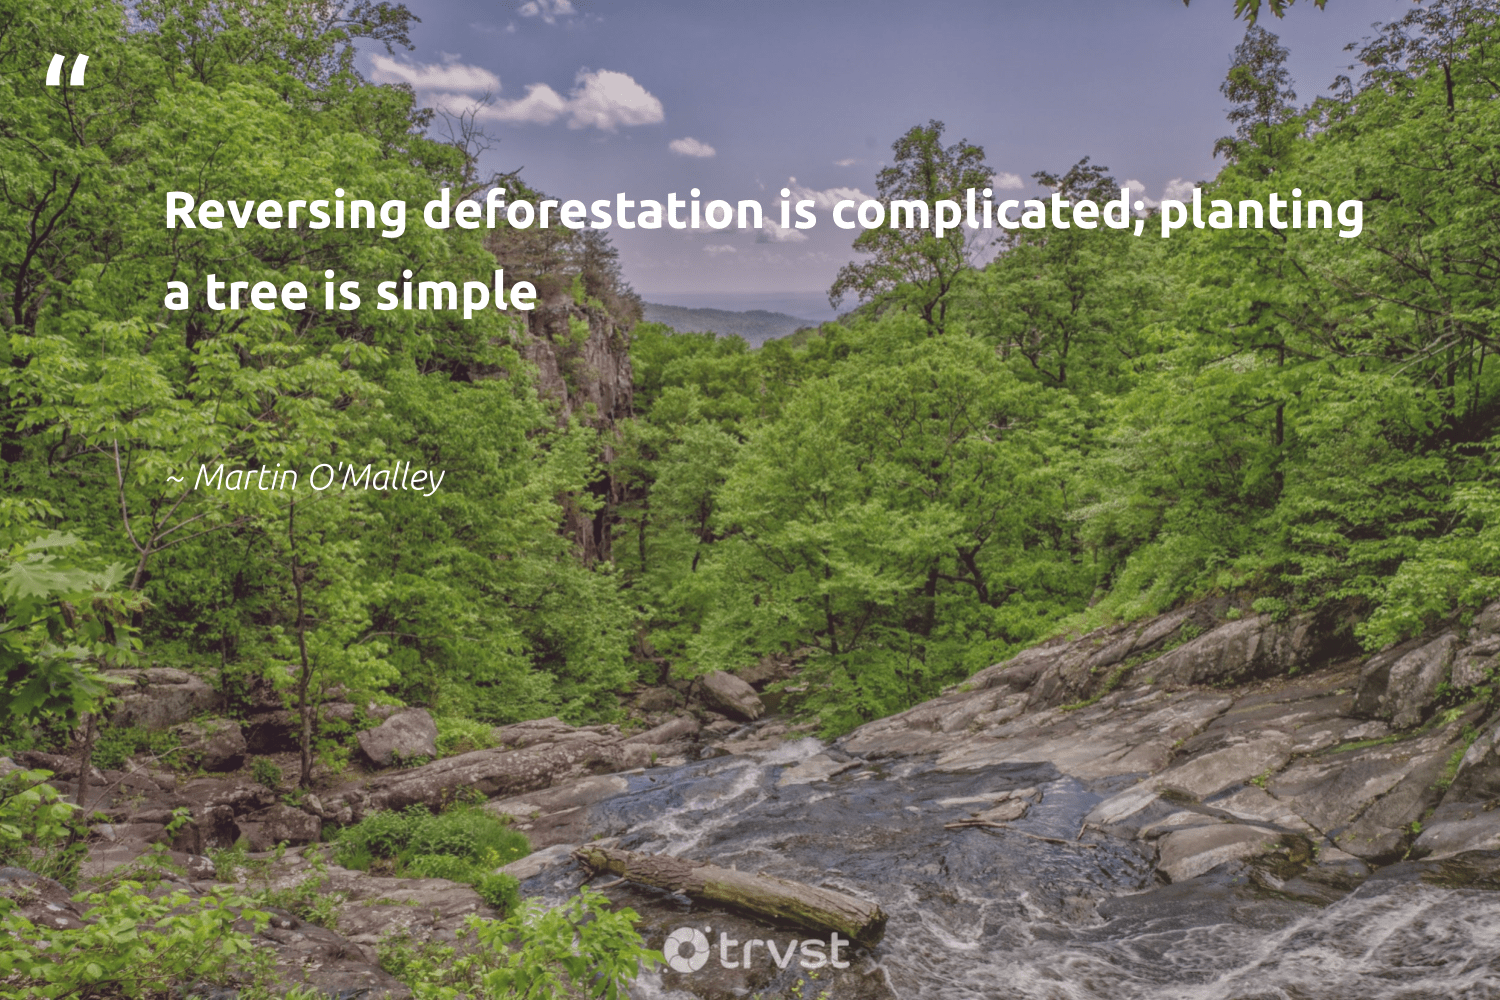 """Reversing deforestation is complicated; planting a tree is simple""  - Martin O'Malley #trvst #quotes"